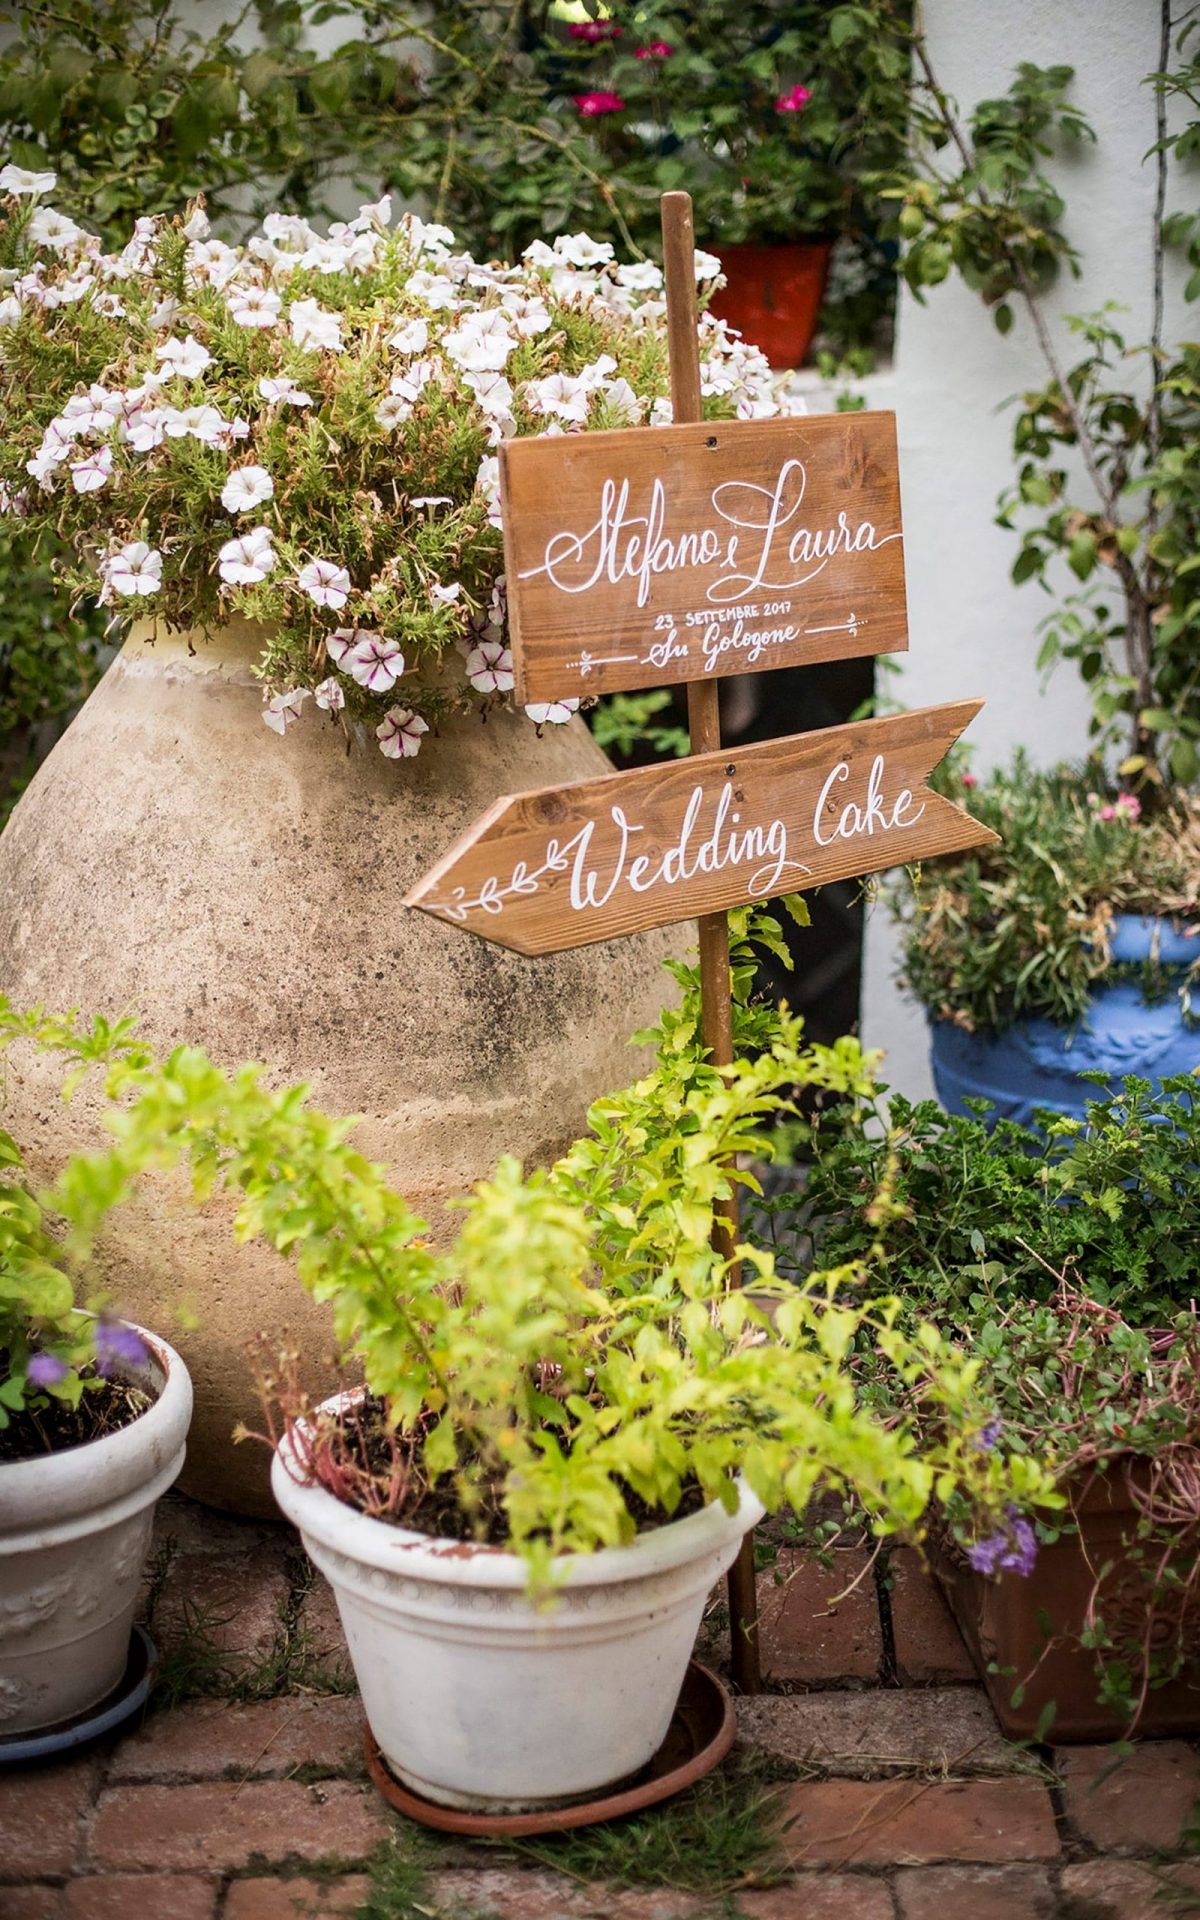 Su Gologone wedding, wooden signs